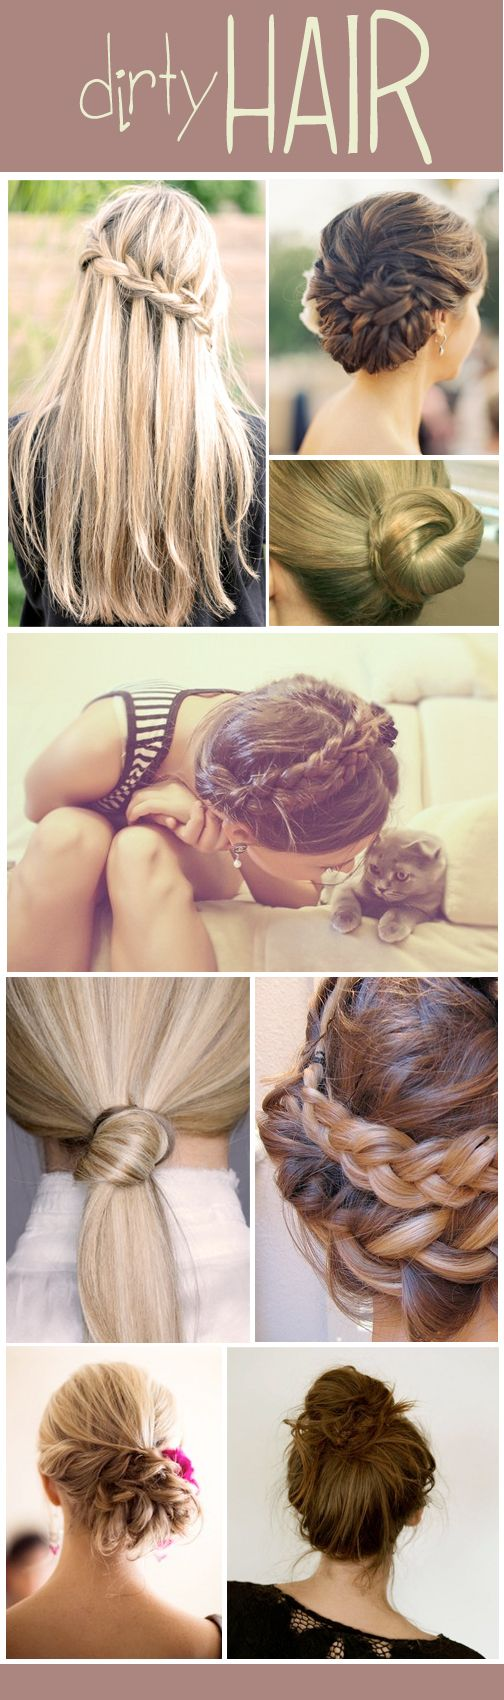 Hairstyles in a hurry country life pinterest hair hair